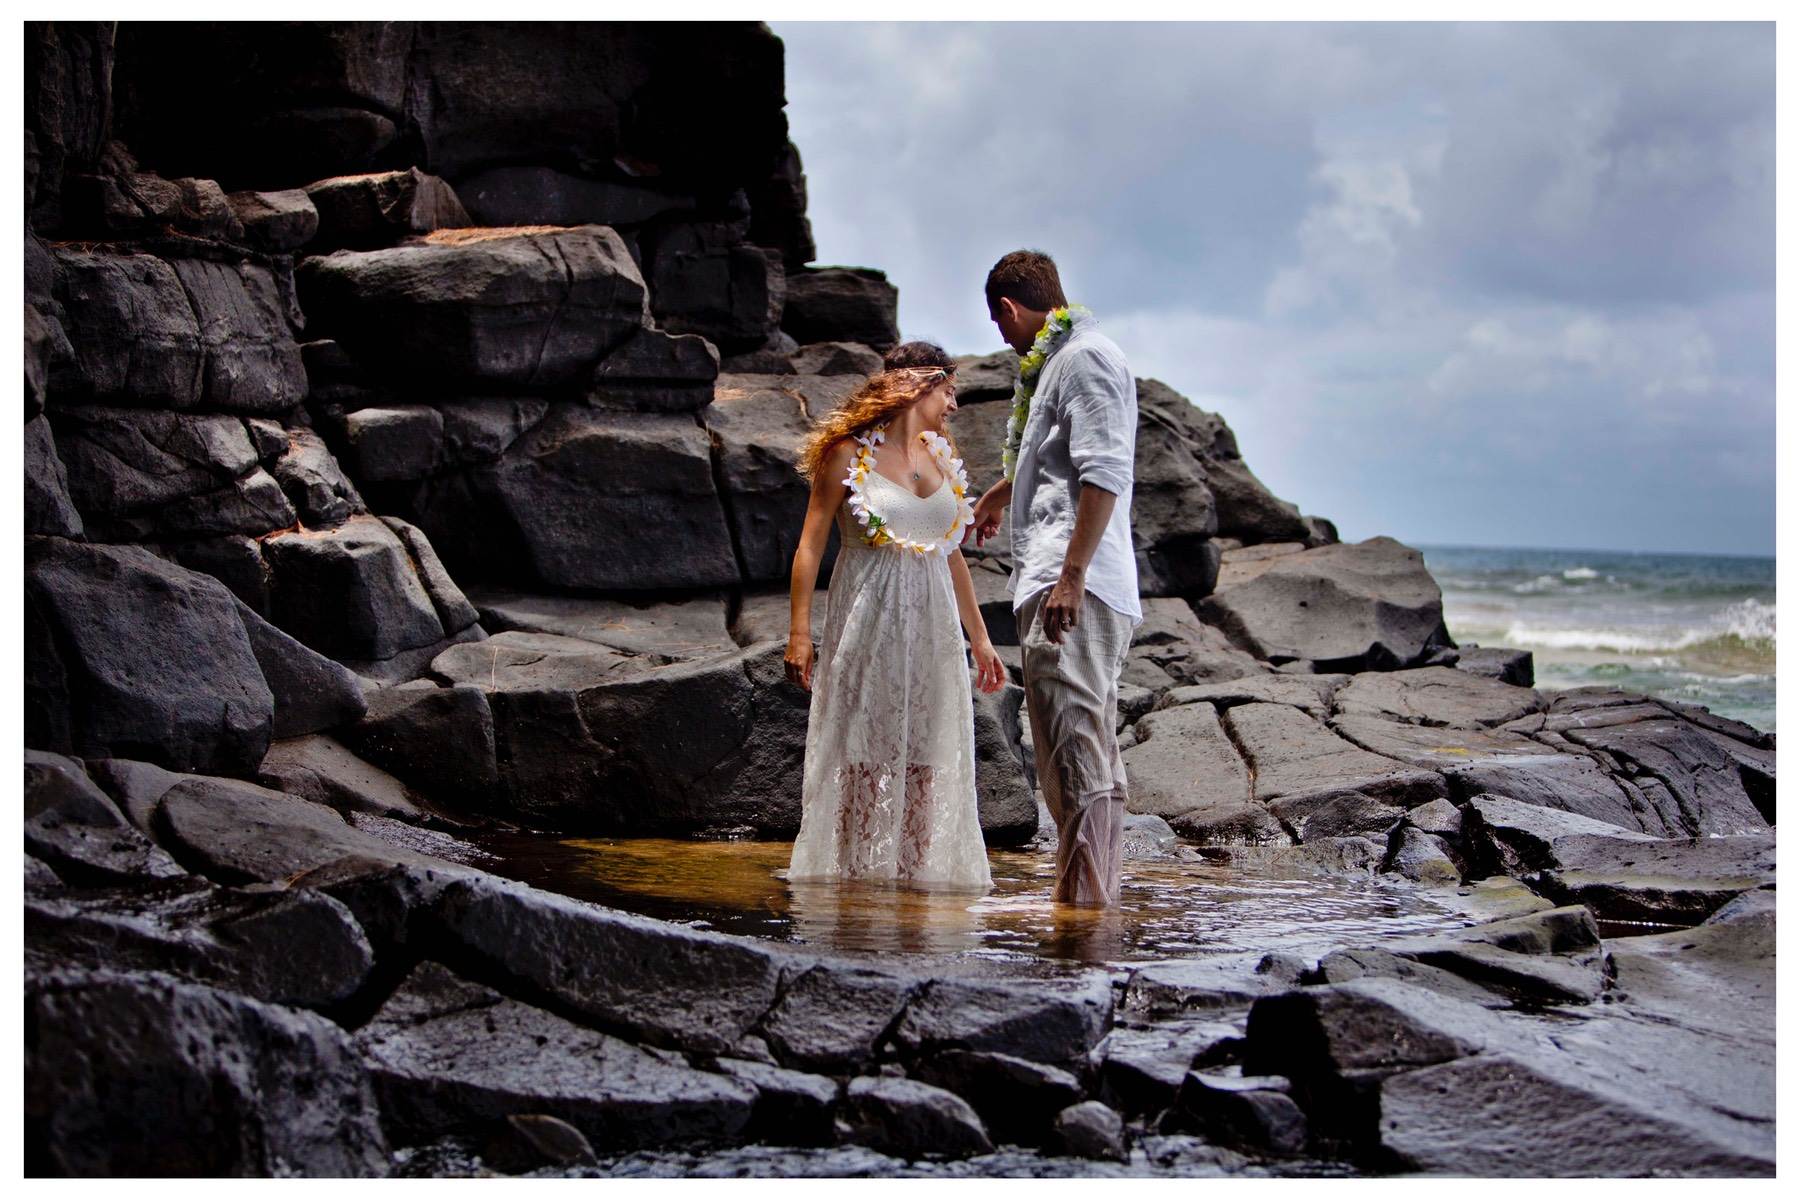 Kauai wedding photographer trash the dress MG 8830 Difraser Kauai wedding videographer